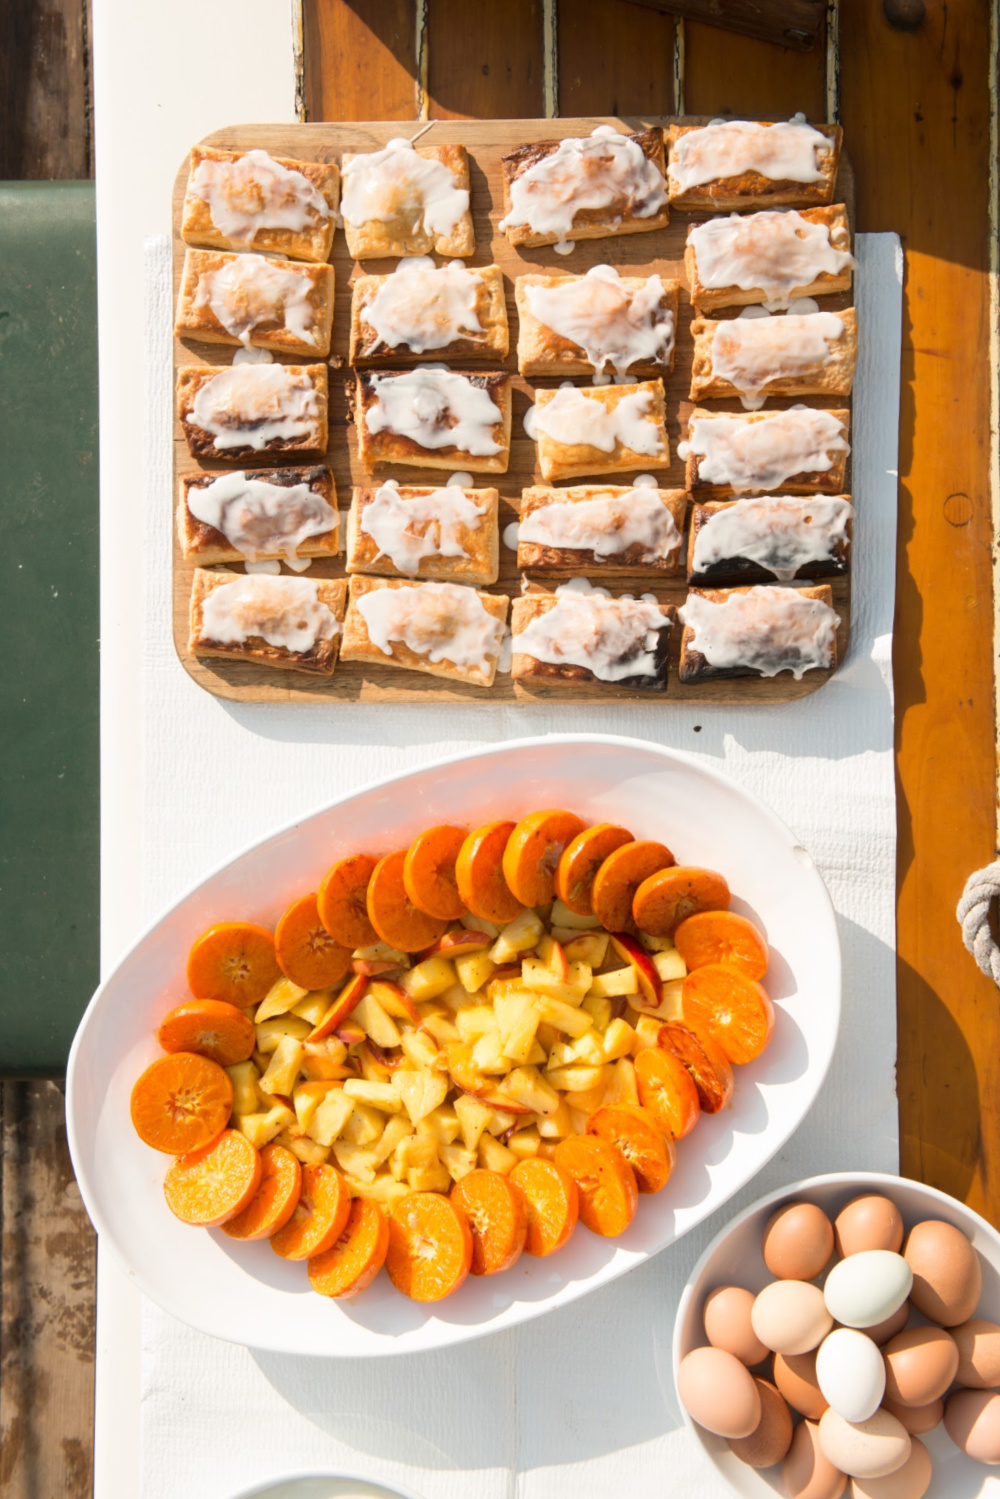 Honey Seared Clementines with pineapple and peaches, Riggin Pop Tarts Photo by Douglas Merriam